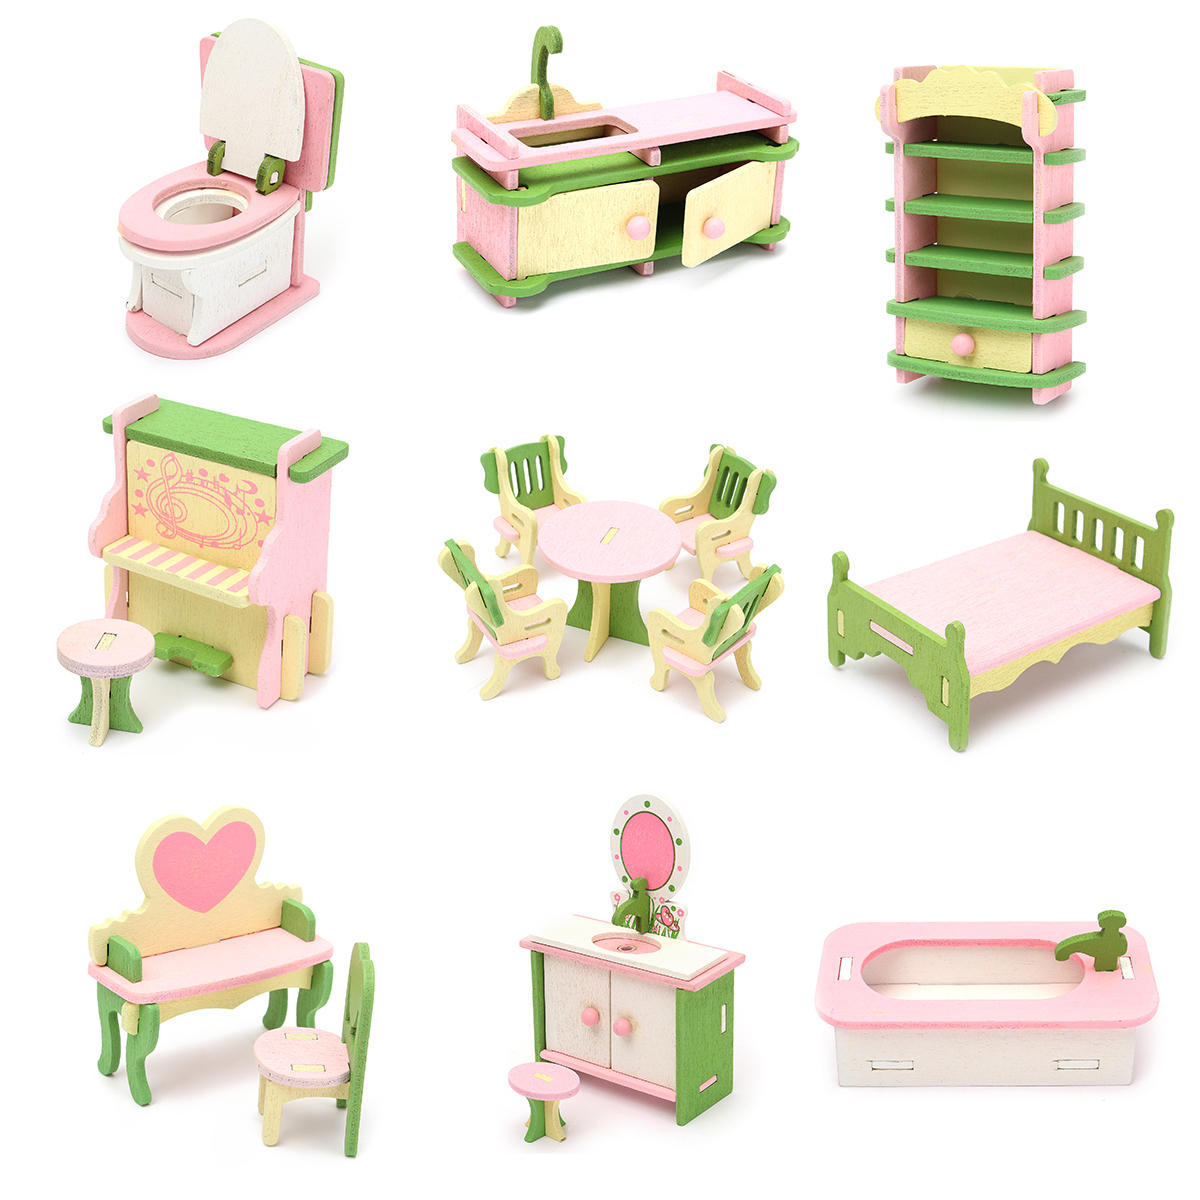 Doll Houses Toys & Hobbies Strong-Willed Diy Miniatures Sofa Bedroom Bathroom Dining Table Furniture Sets For Doll House Craft Toys Acessories Christmas Birthday Gift